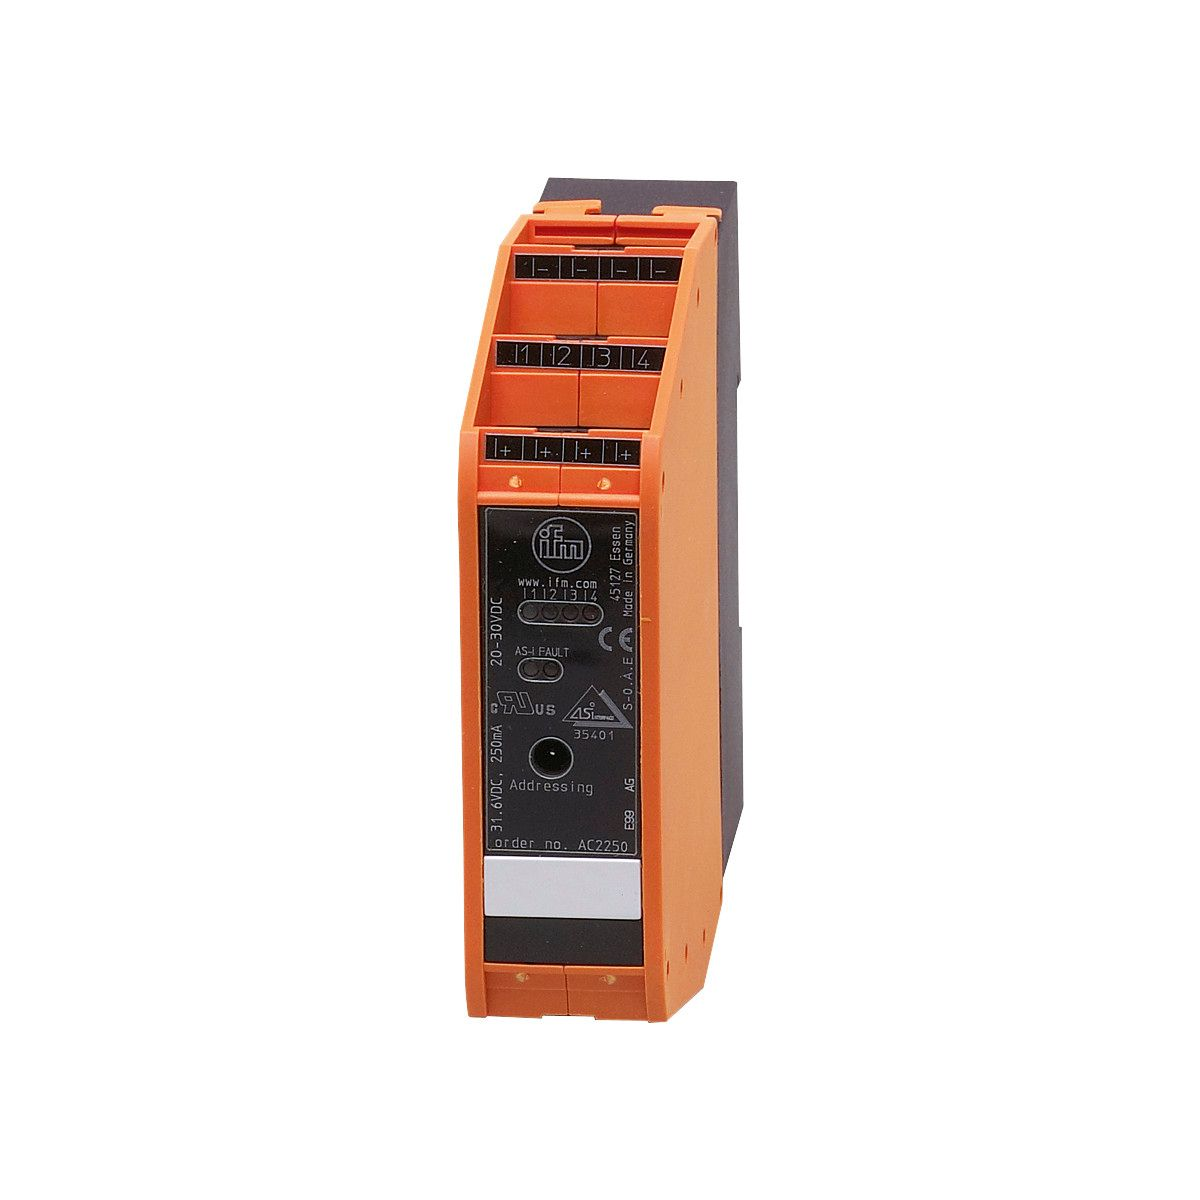 AC2216 - AS-Interface control cabinet module - ifm electronic